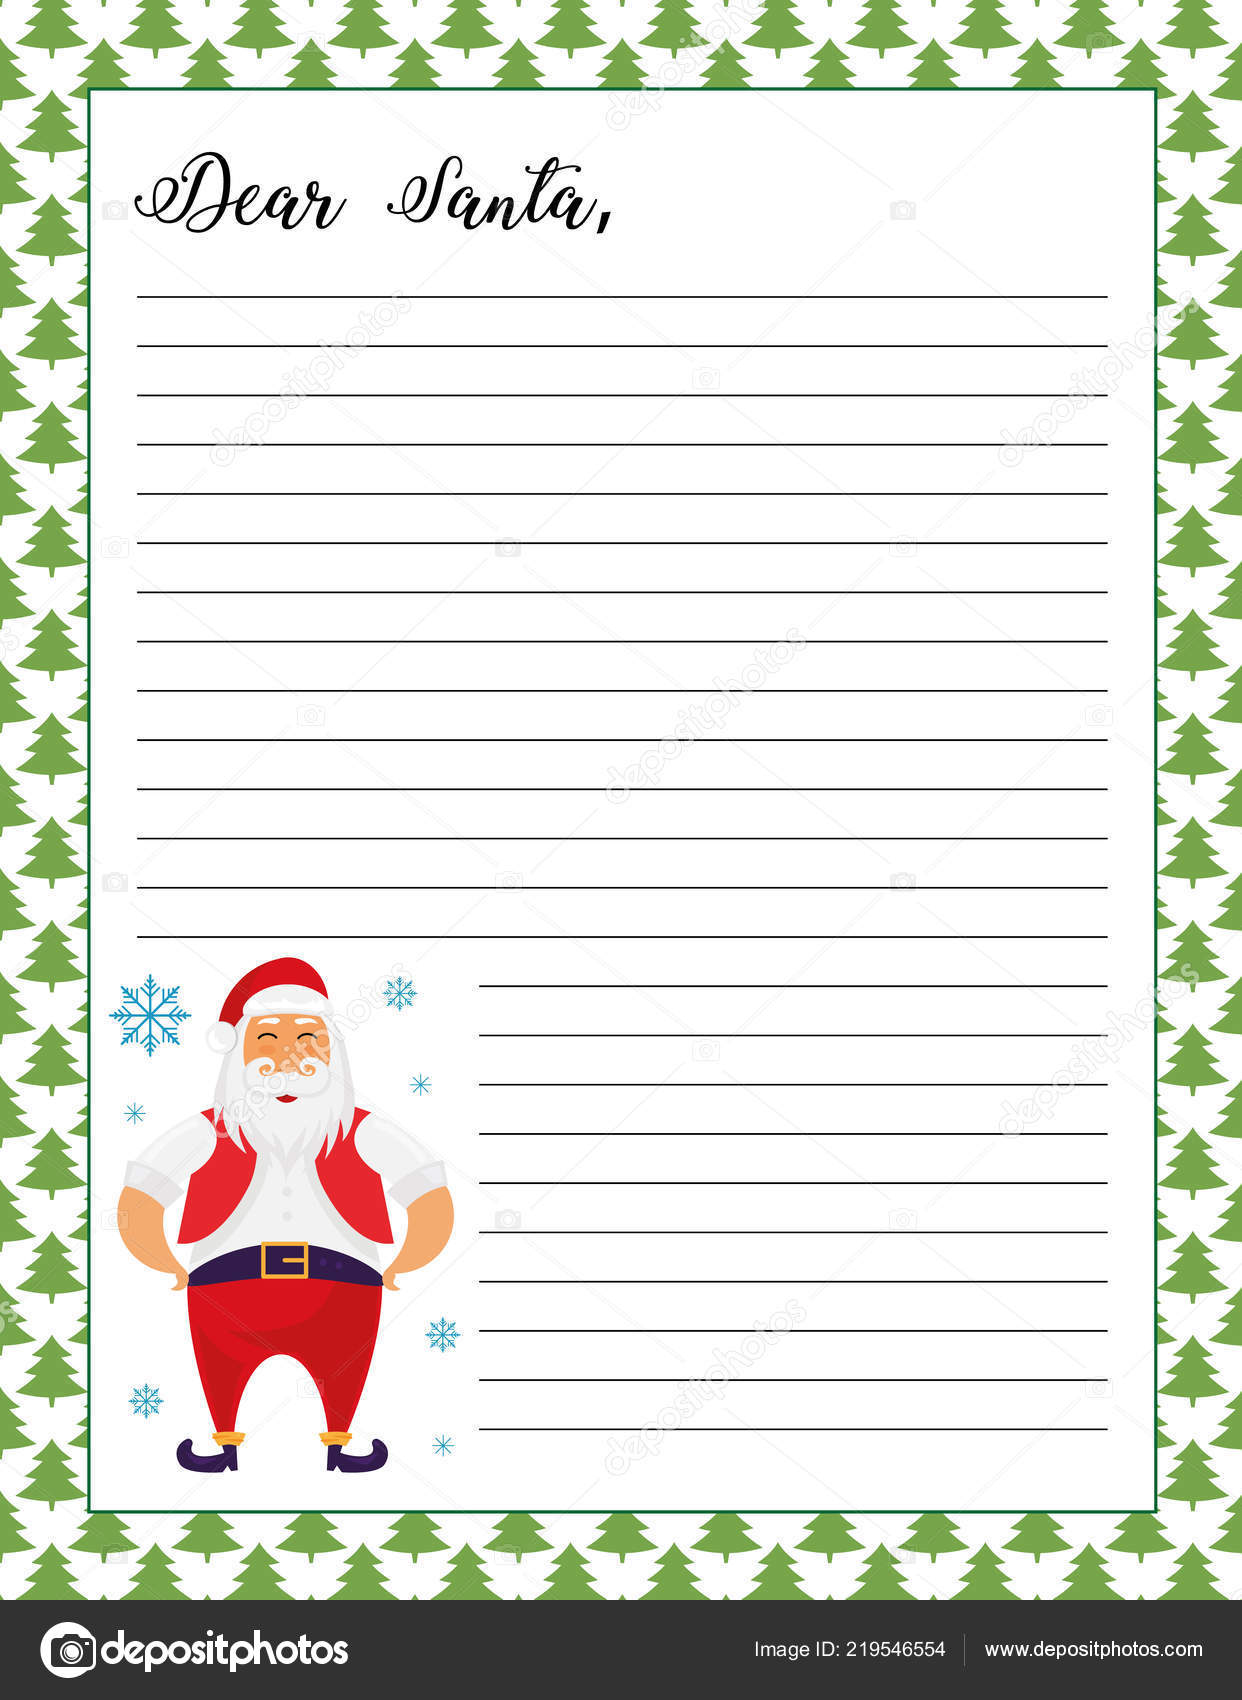 photo regarding Santa Claus Printable referred to as Letter Santa Printable Site Santa Claus Instance Inventory